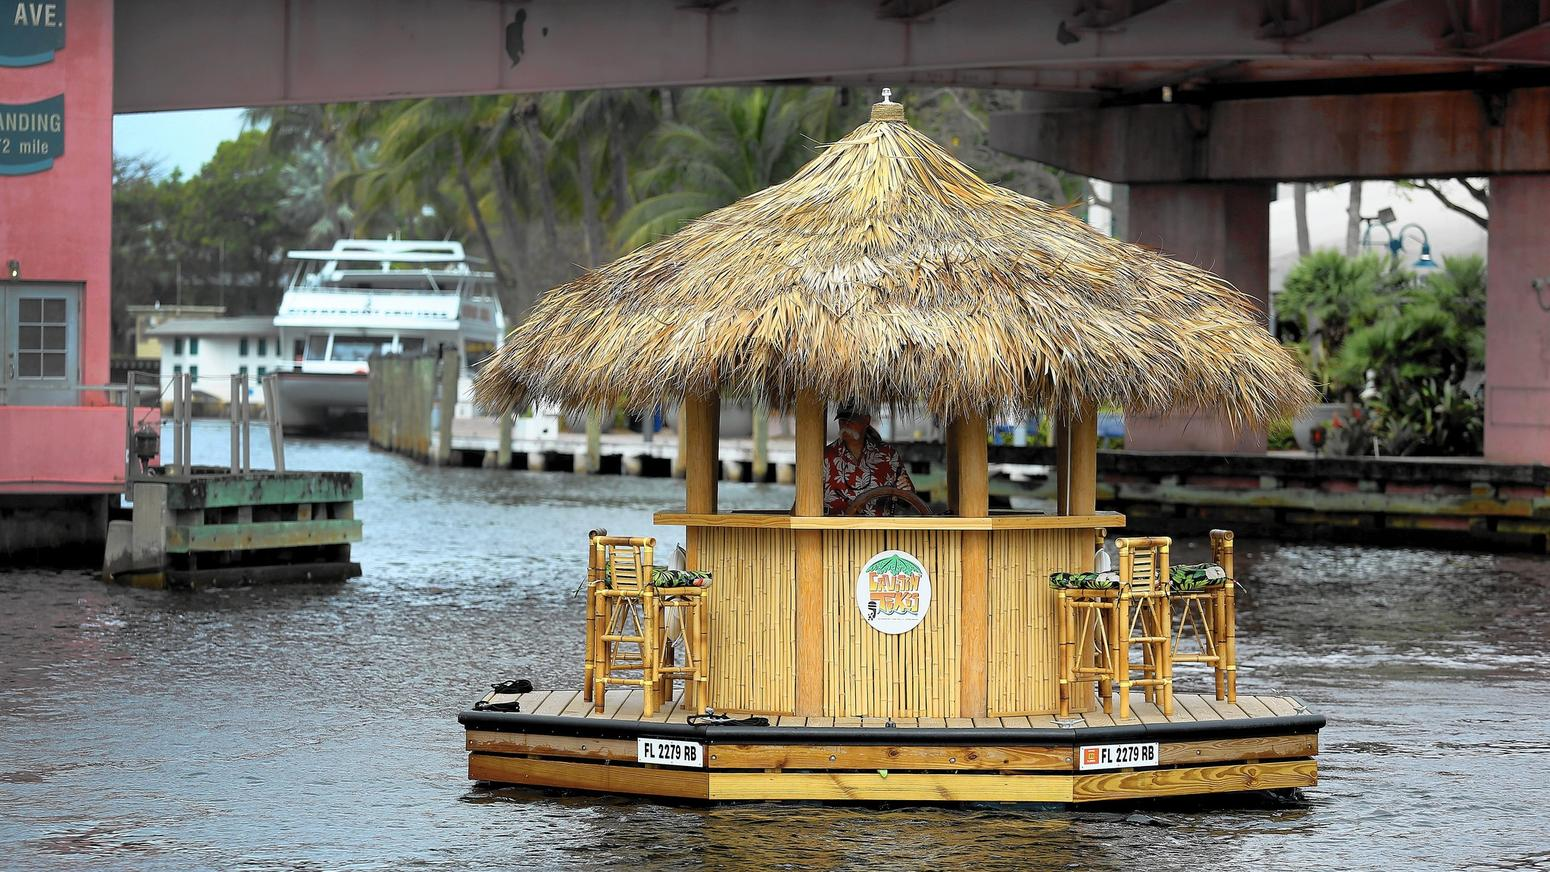 fl-2457886-fl-tiki-hut-party-boat01-ng-jpg-20160401